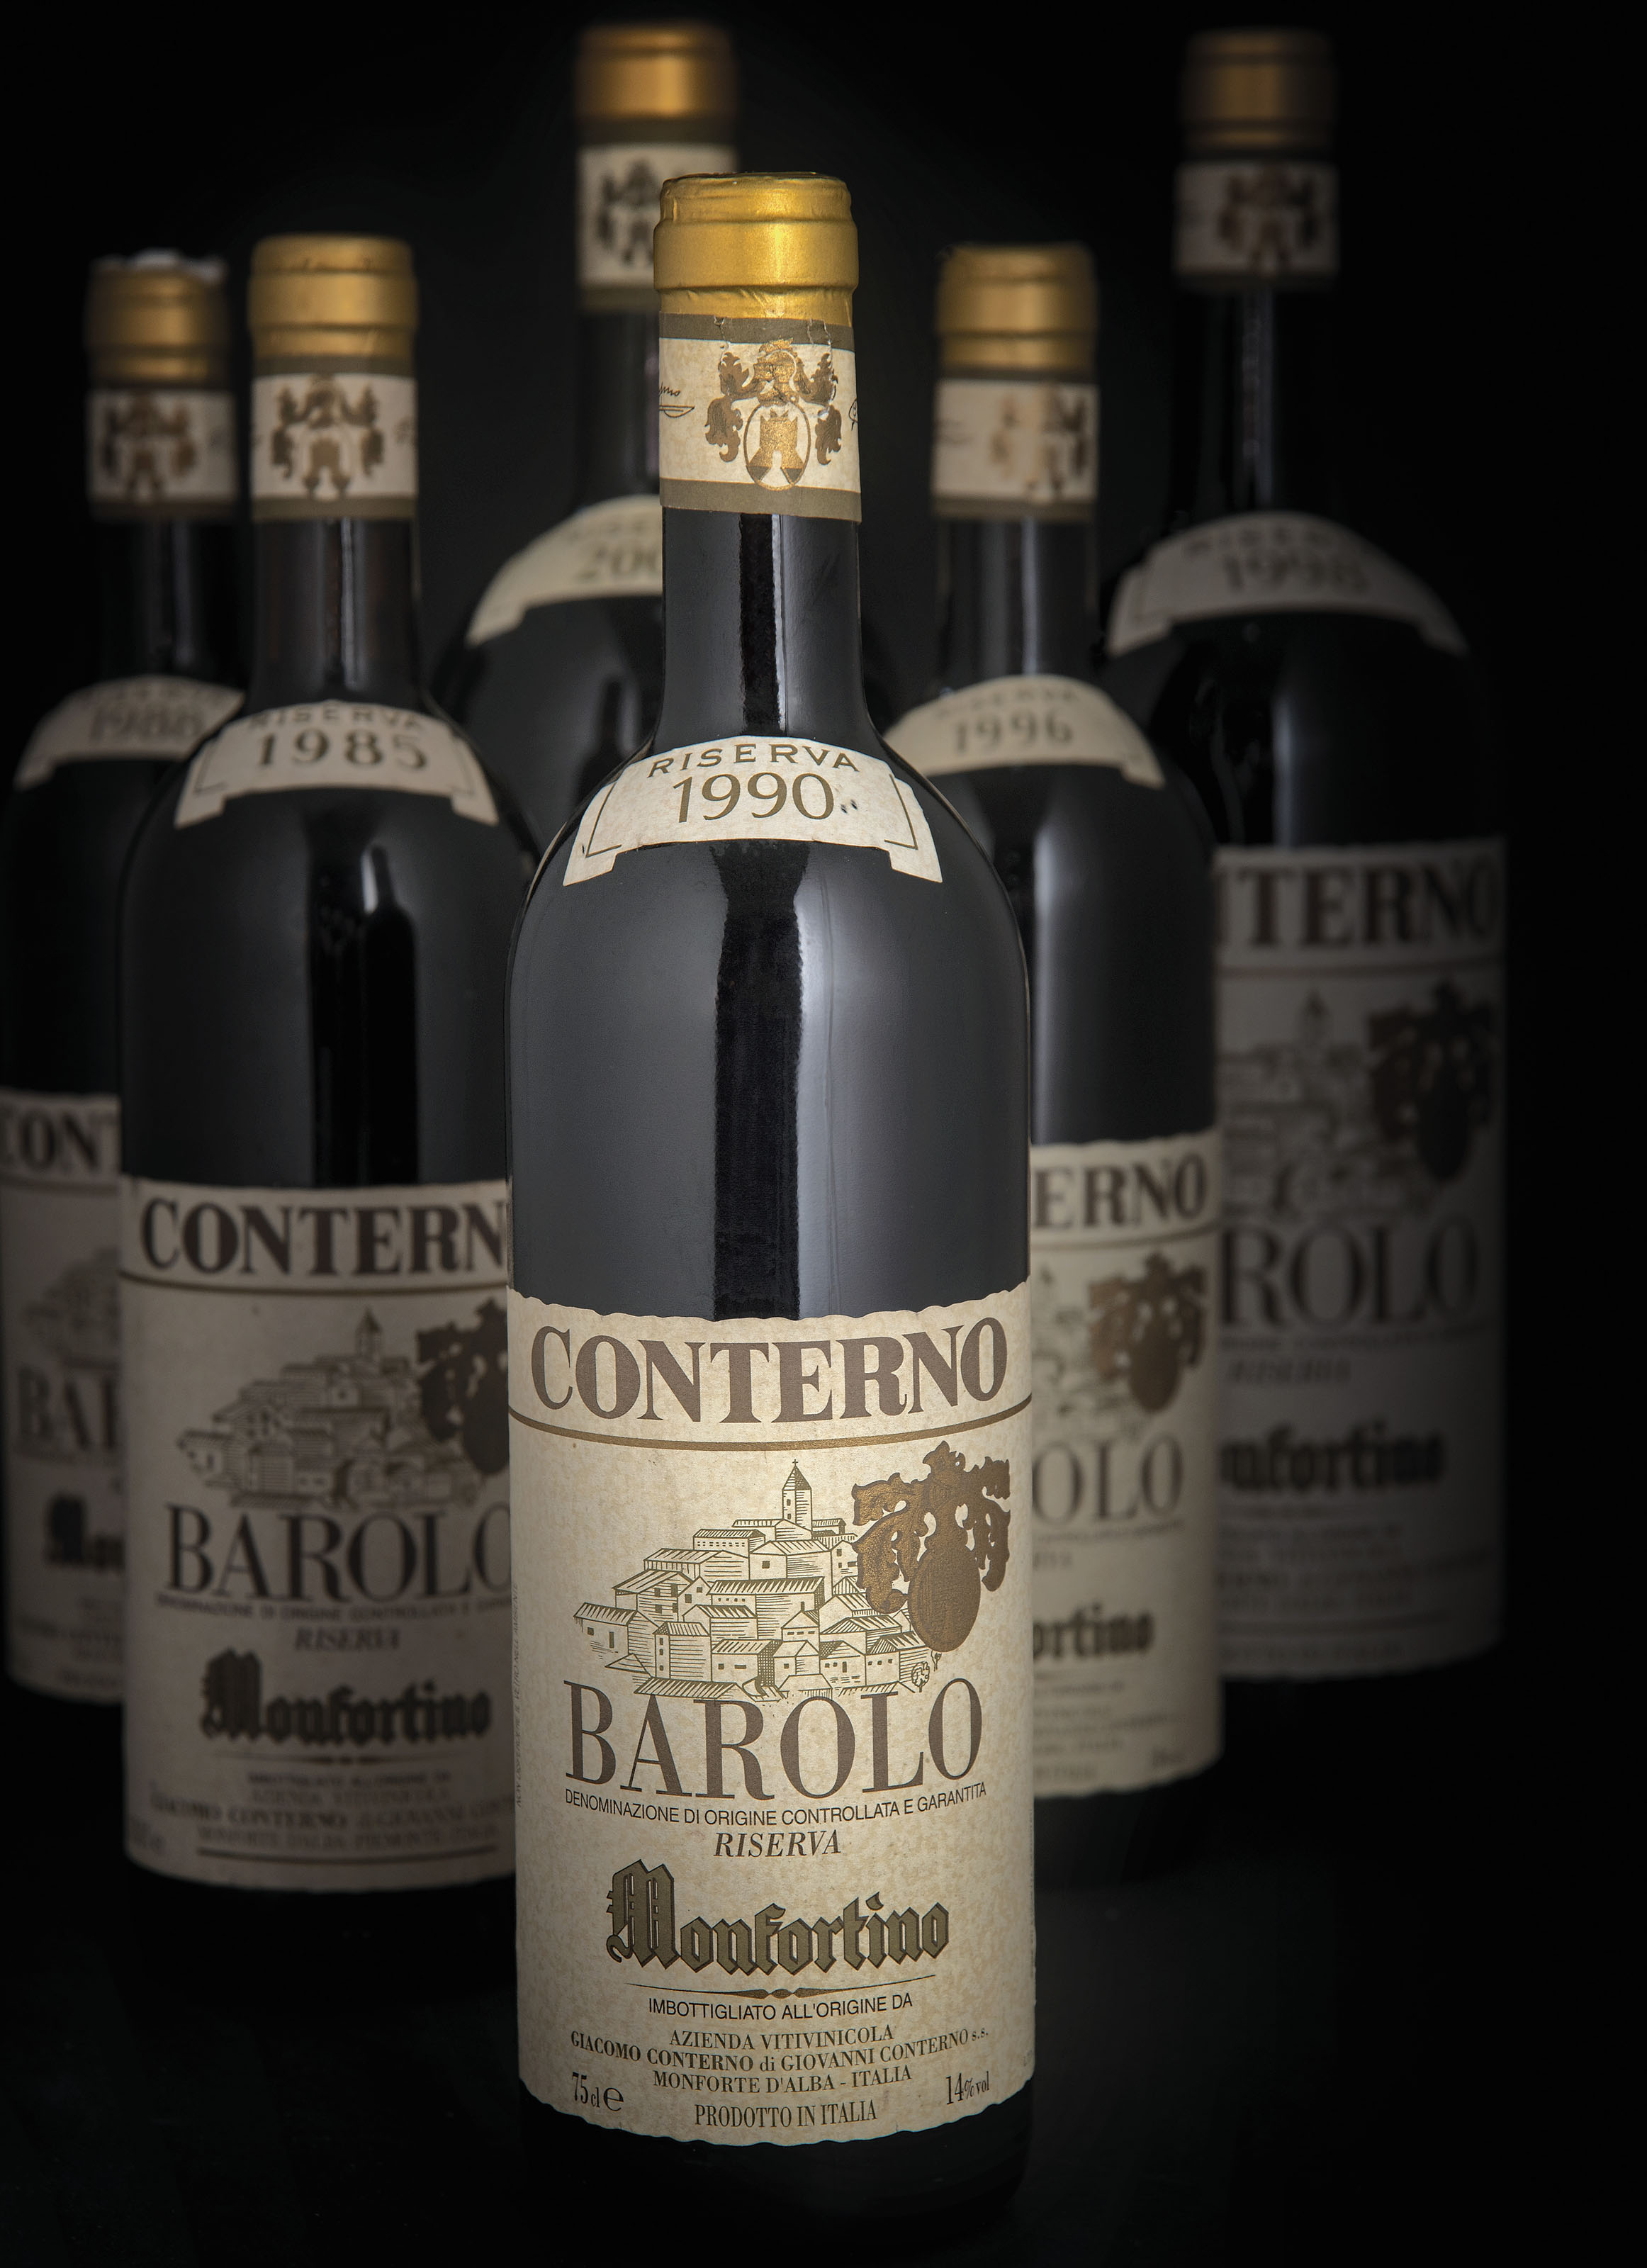 Giacomo Conterno, Barolo Riserva Monfortino  1985 Level: base of neck  (1) 1988 One slightly stained label. Levels: base of neck  (2) 1990 Level: base of neck  (1) 1993 Levels: base of neck  (2) 1995 Levels: base of neck  (2) 1996 Level: base of neck  (1) 1997 Level: base of neck  (1) 1998 Level: base of neck  (1) 1999 Level: base of neck  (1)